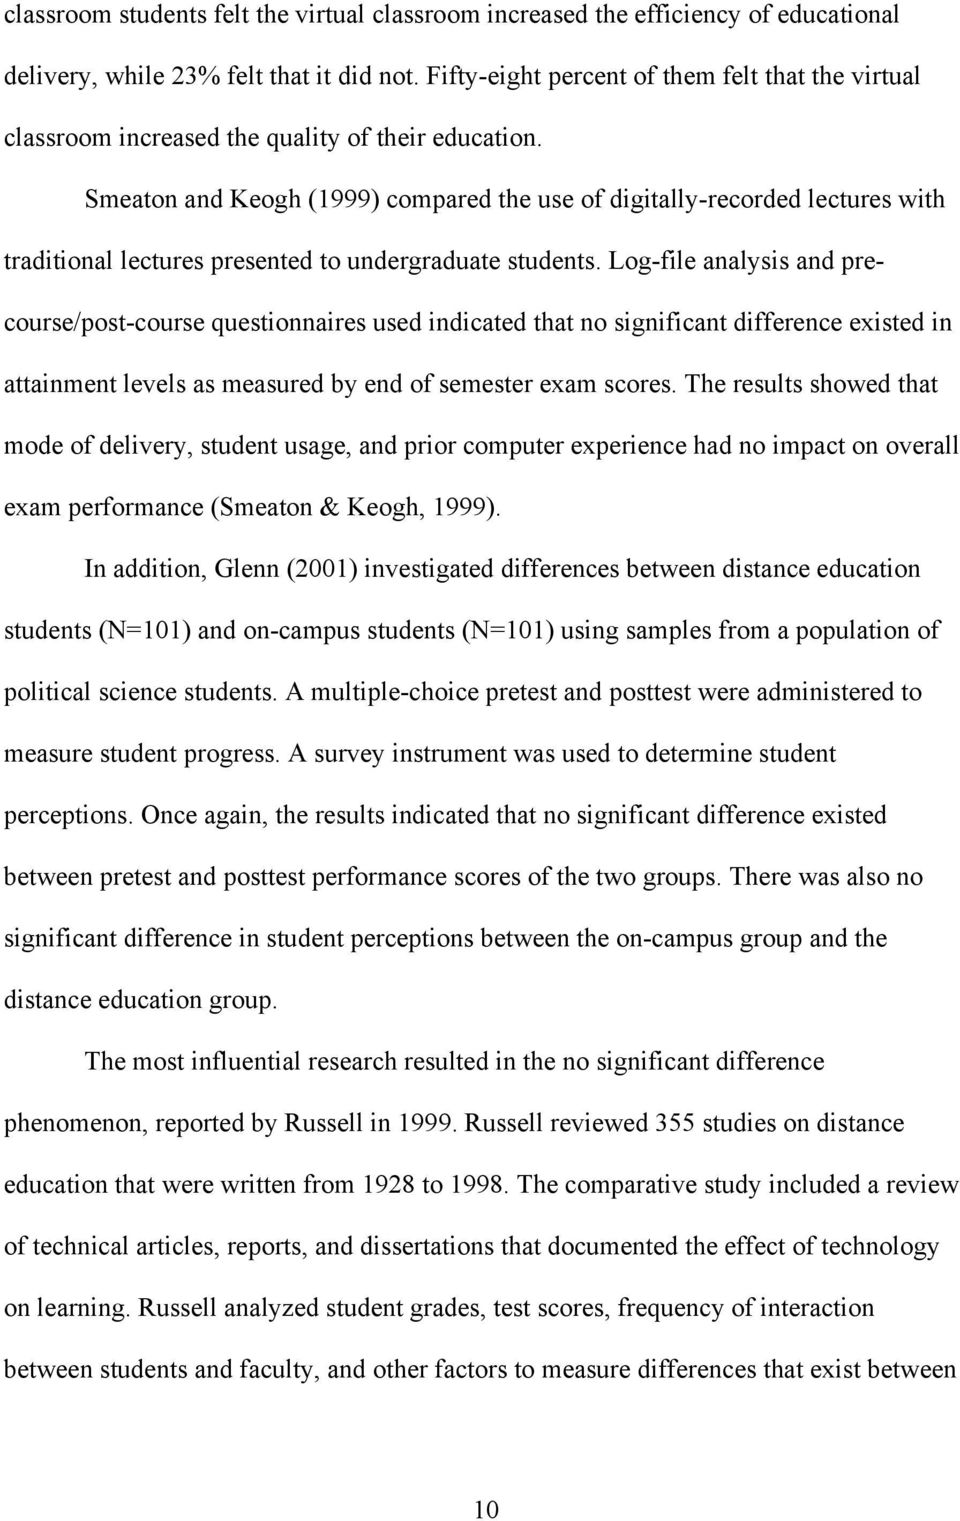 Smeaton and Keogh (1999) compared the use of digitally-recorded lectures with traditional lectures presented to undergraduate students.